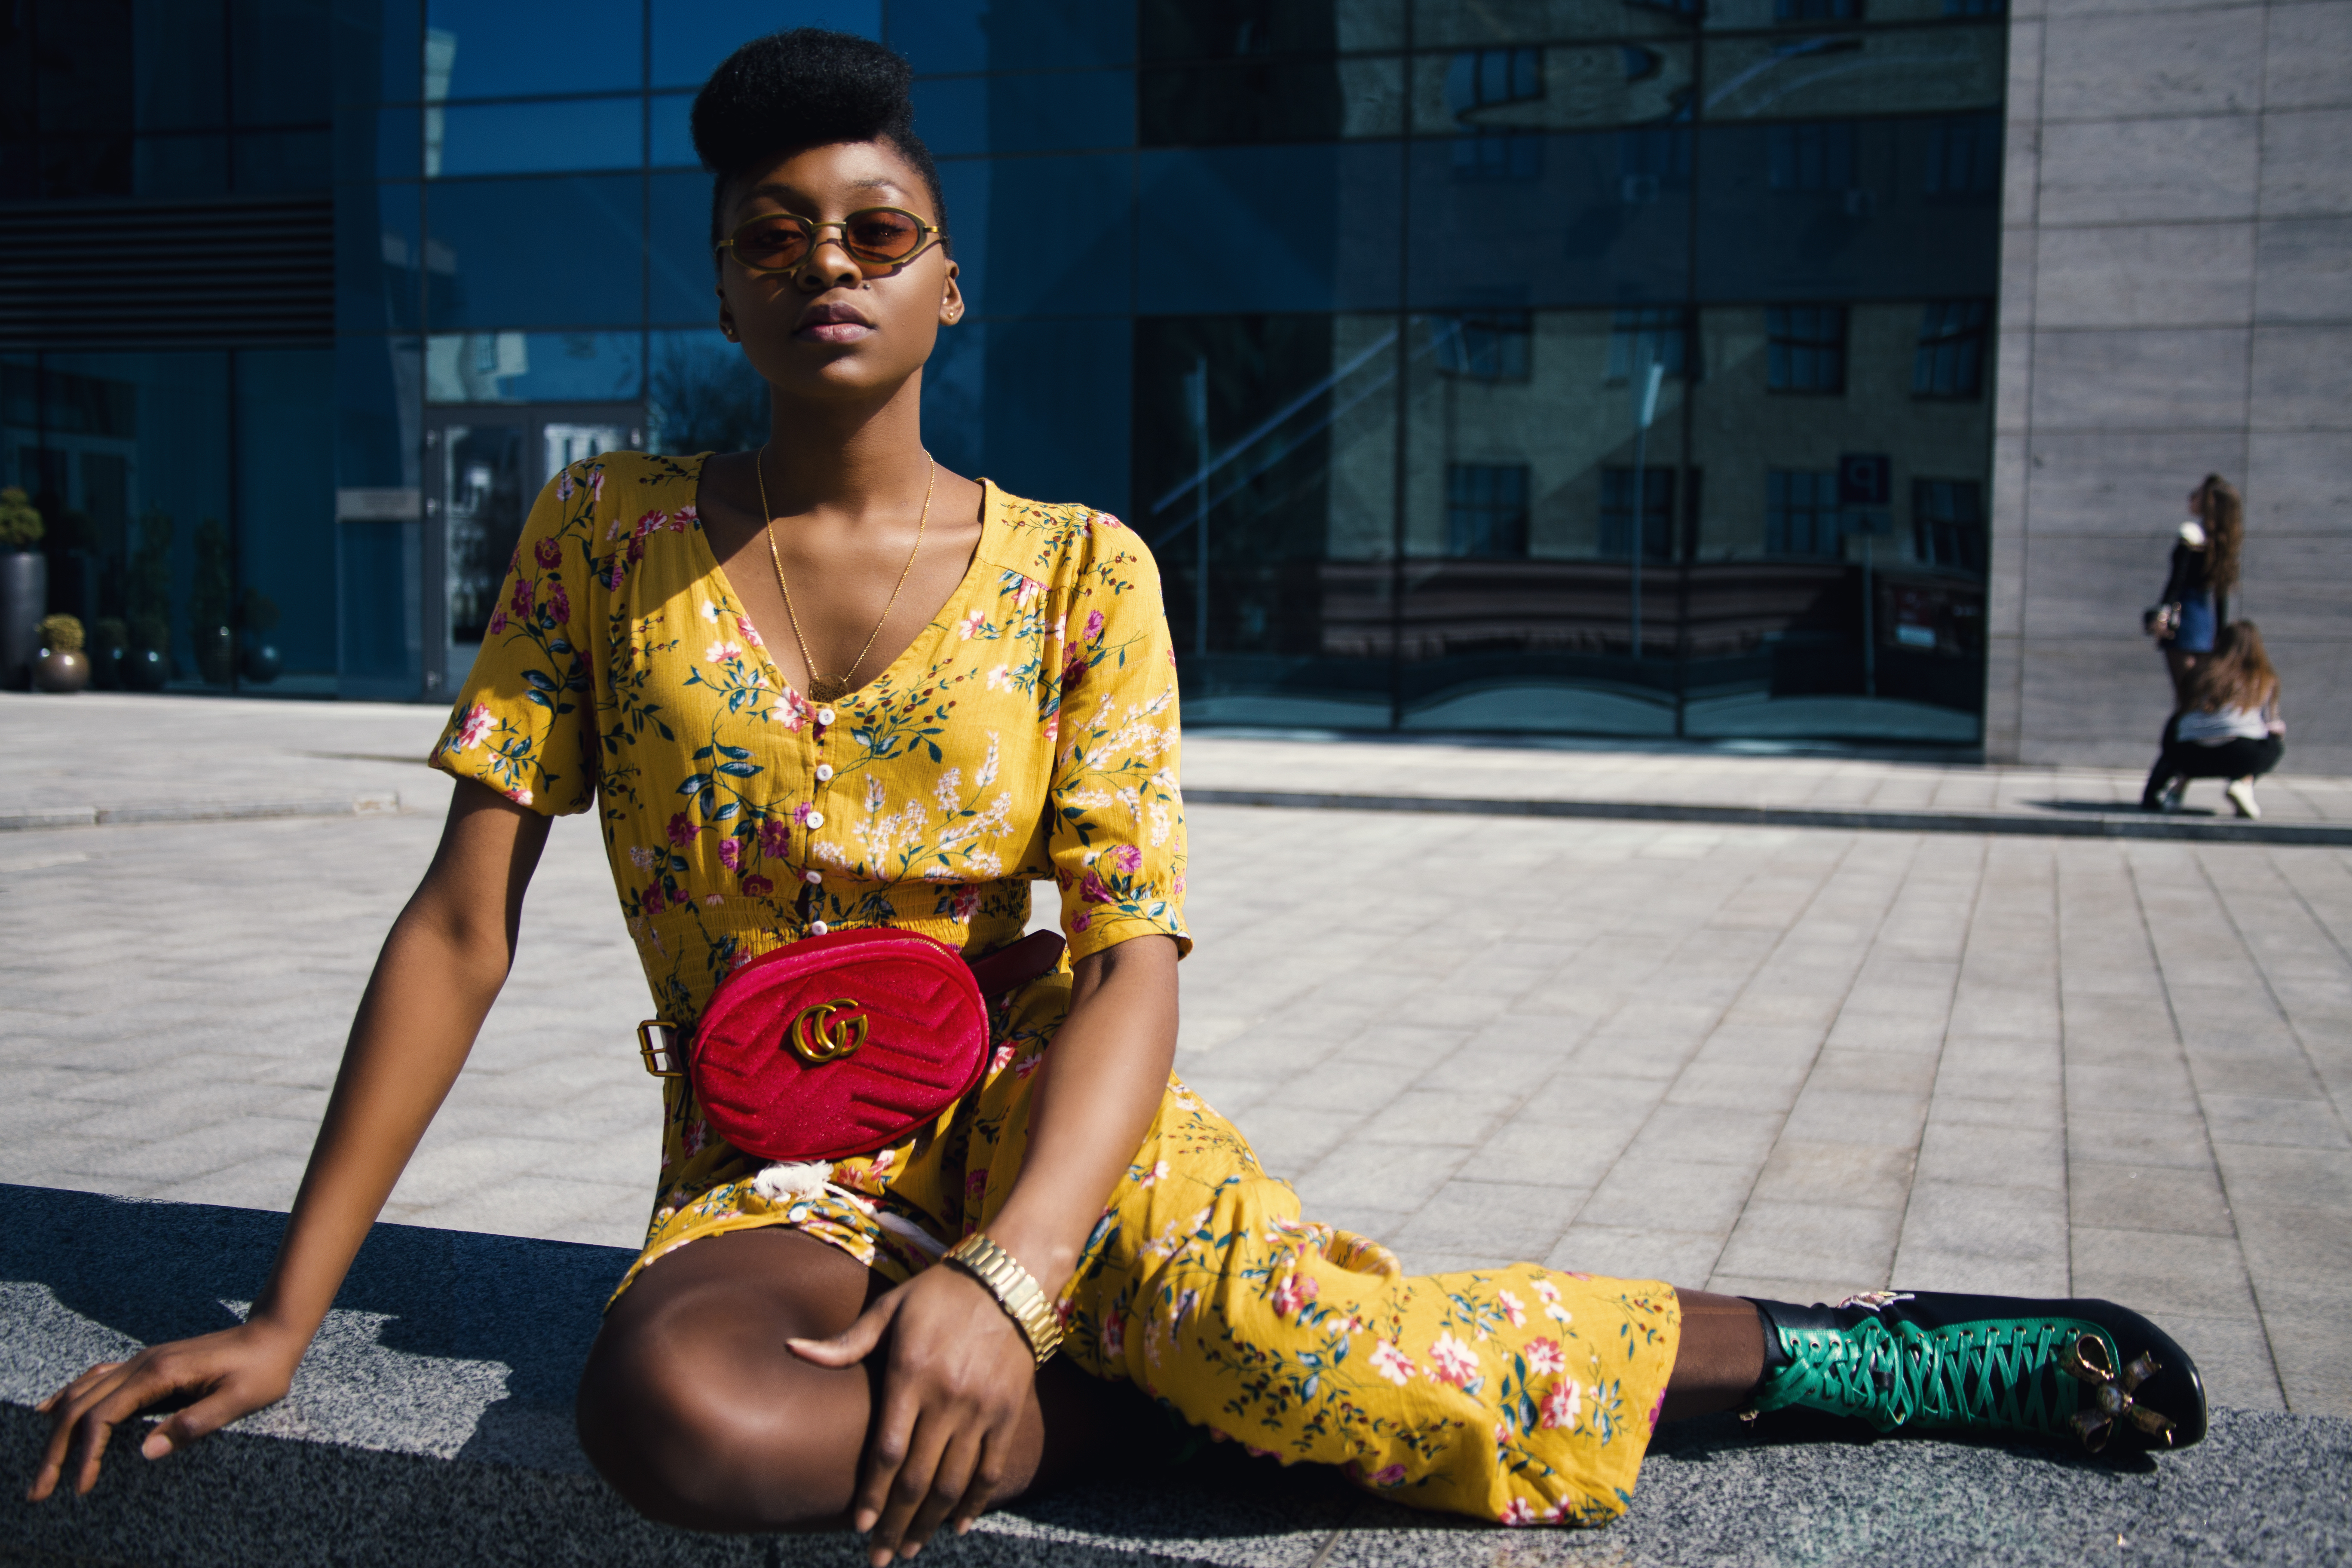 Woman in Yellow Floral Jumpsuit Sitting on Concrete Floor